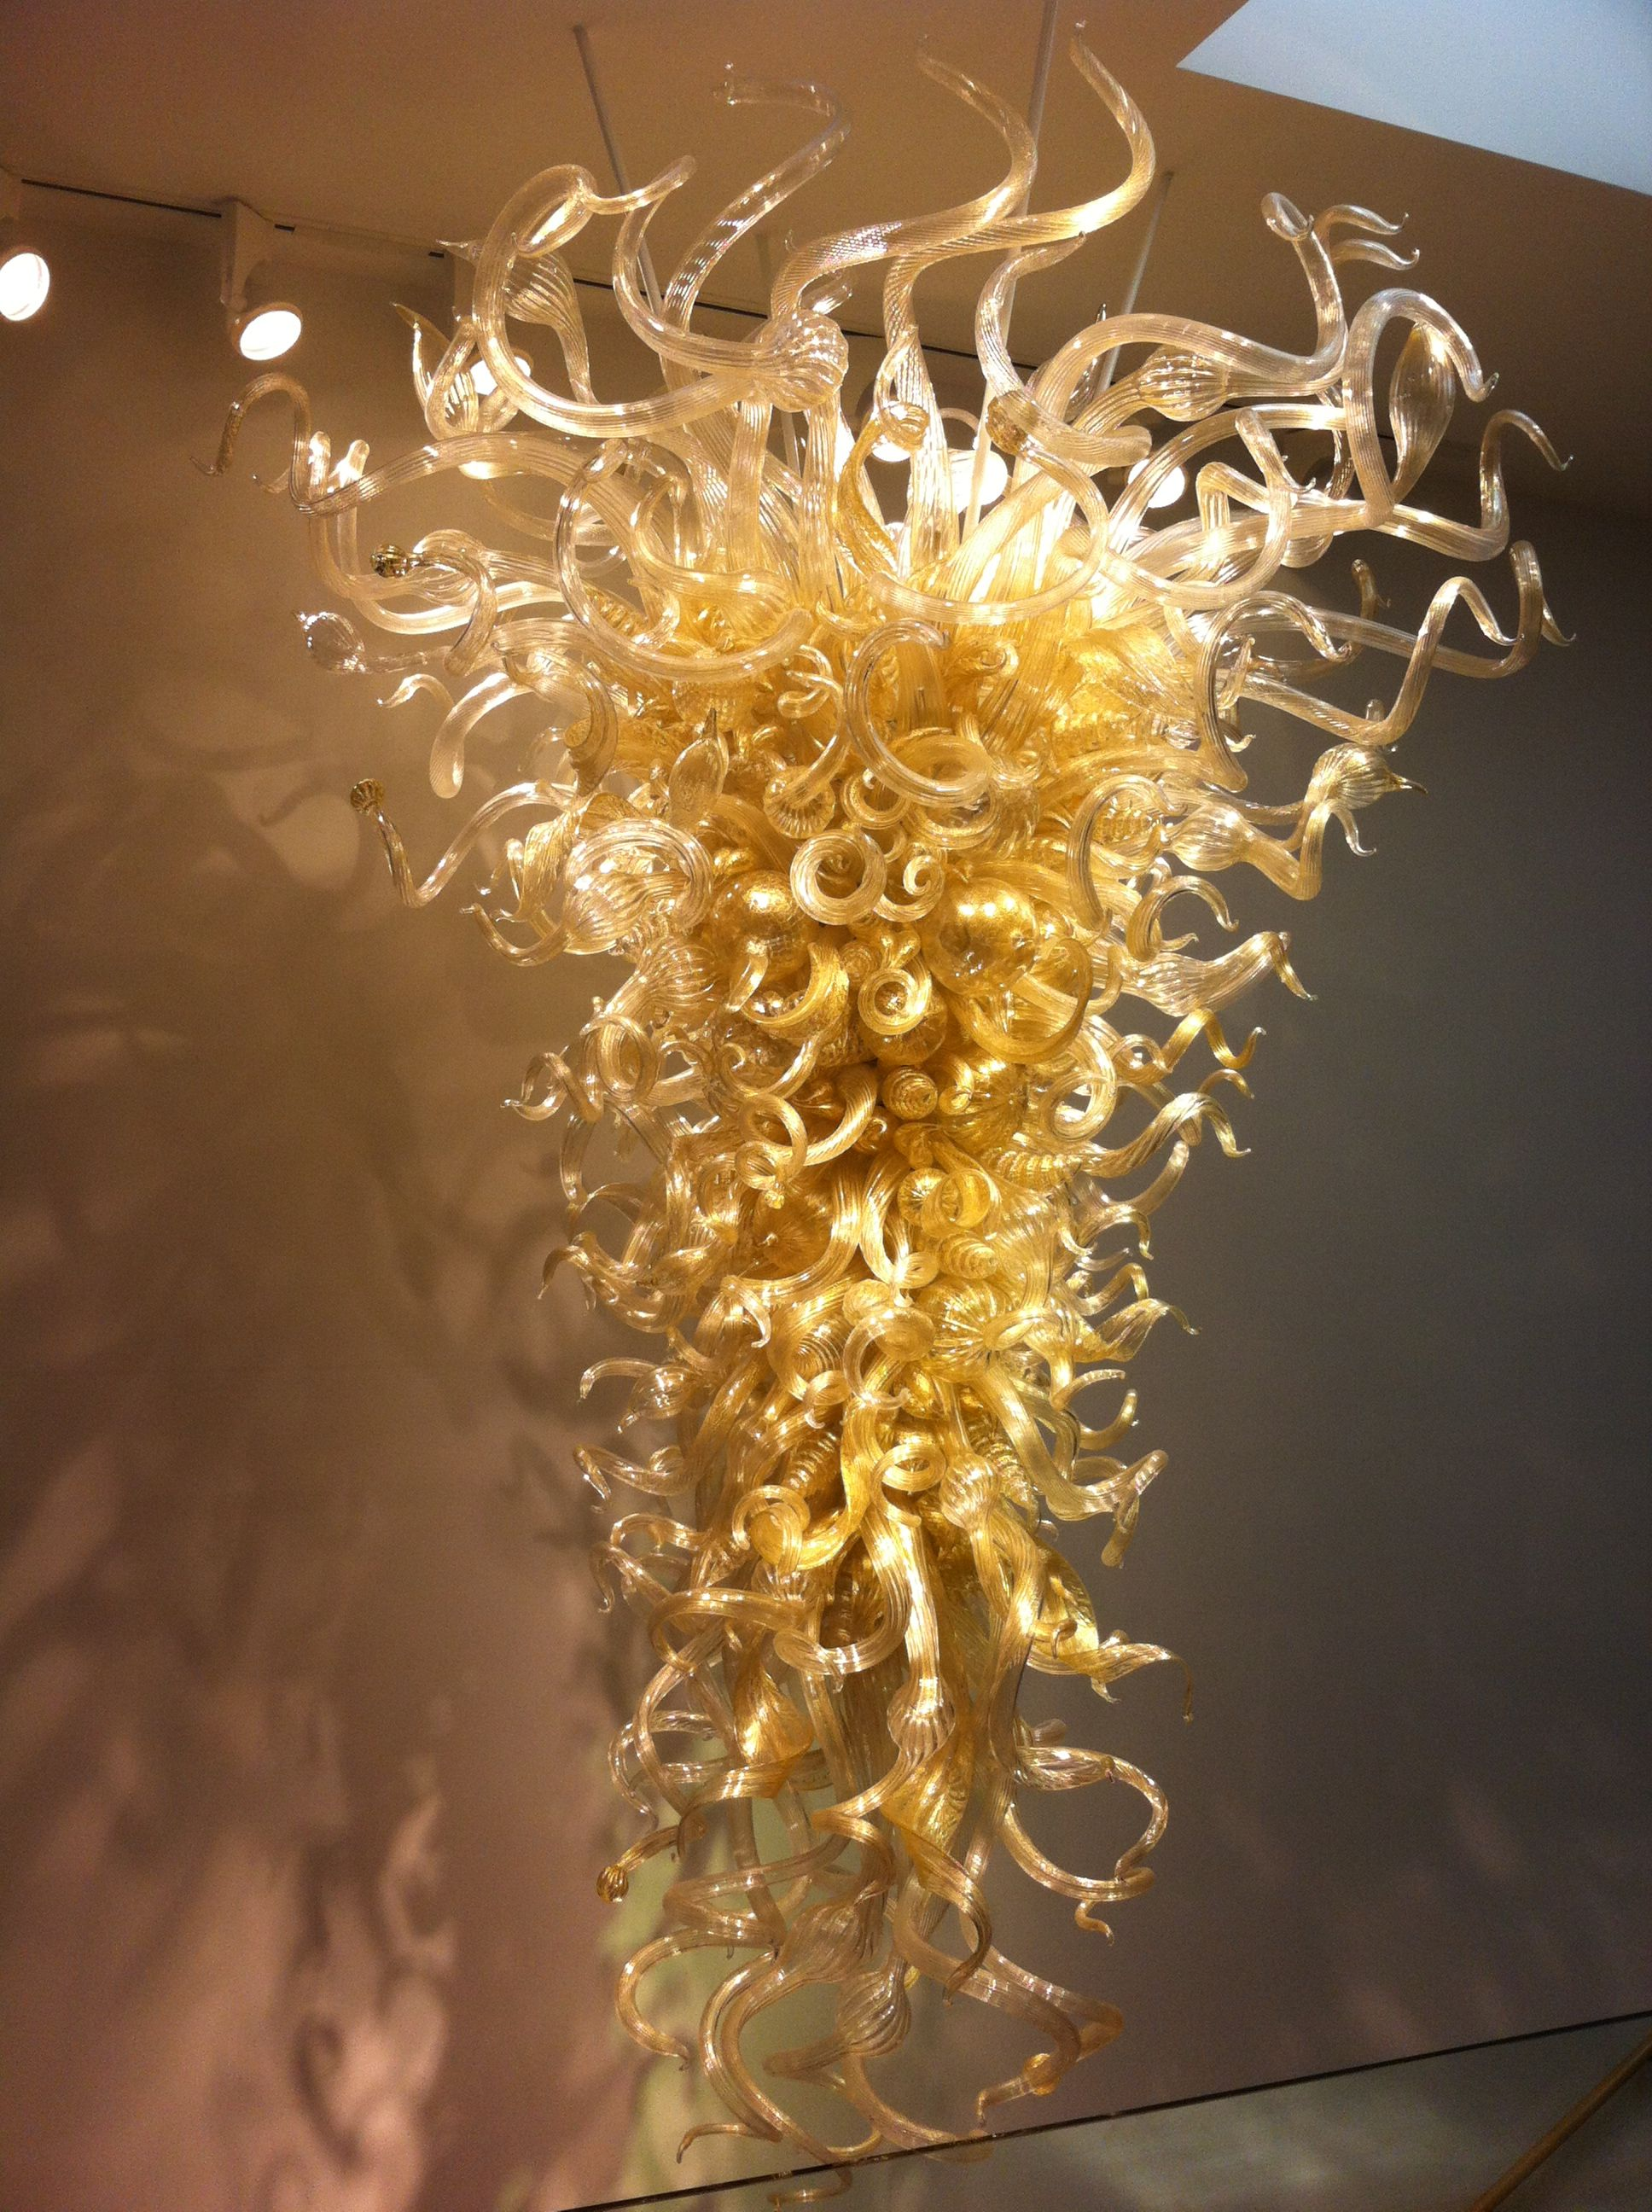 Enlightenment By Dale Chihuly Glass Chandelier Hanging In The Mingei Museum